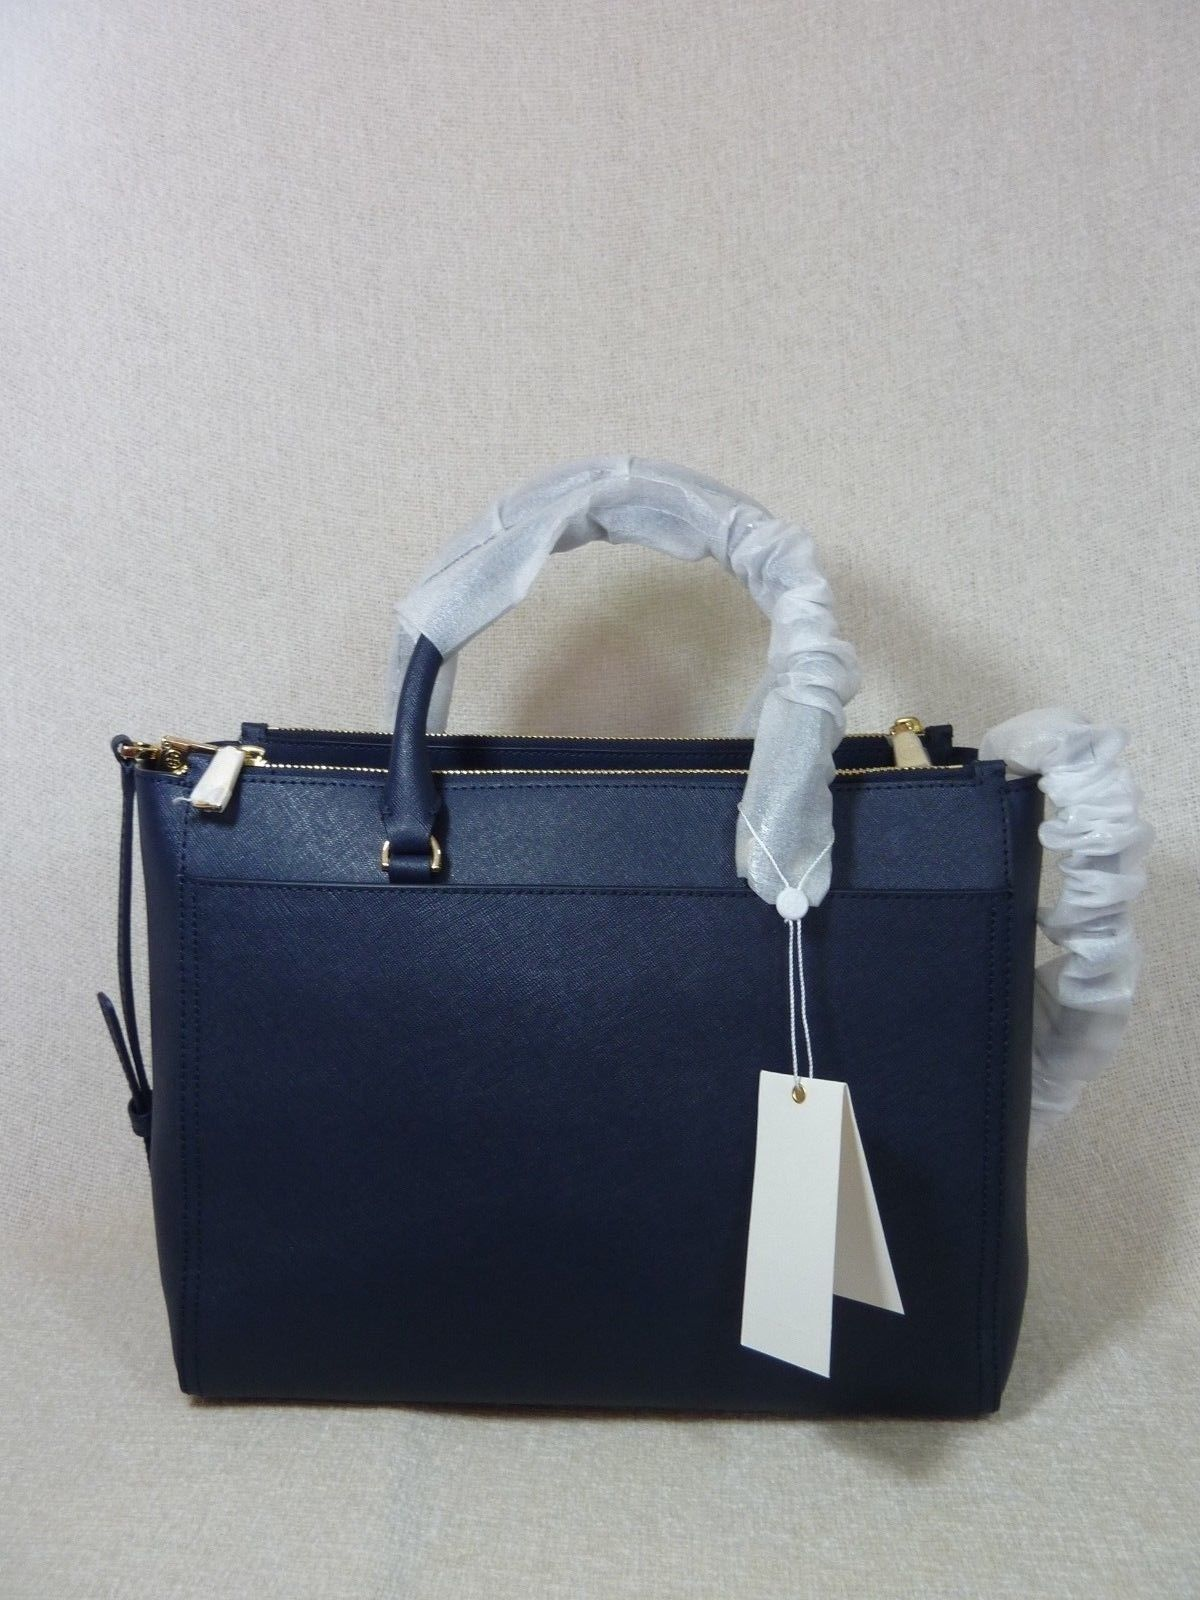 Tory Burch Navy Blue Saffiano Leather Robinson Double-Zip Tote $458 image 4